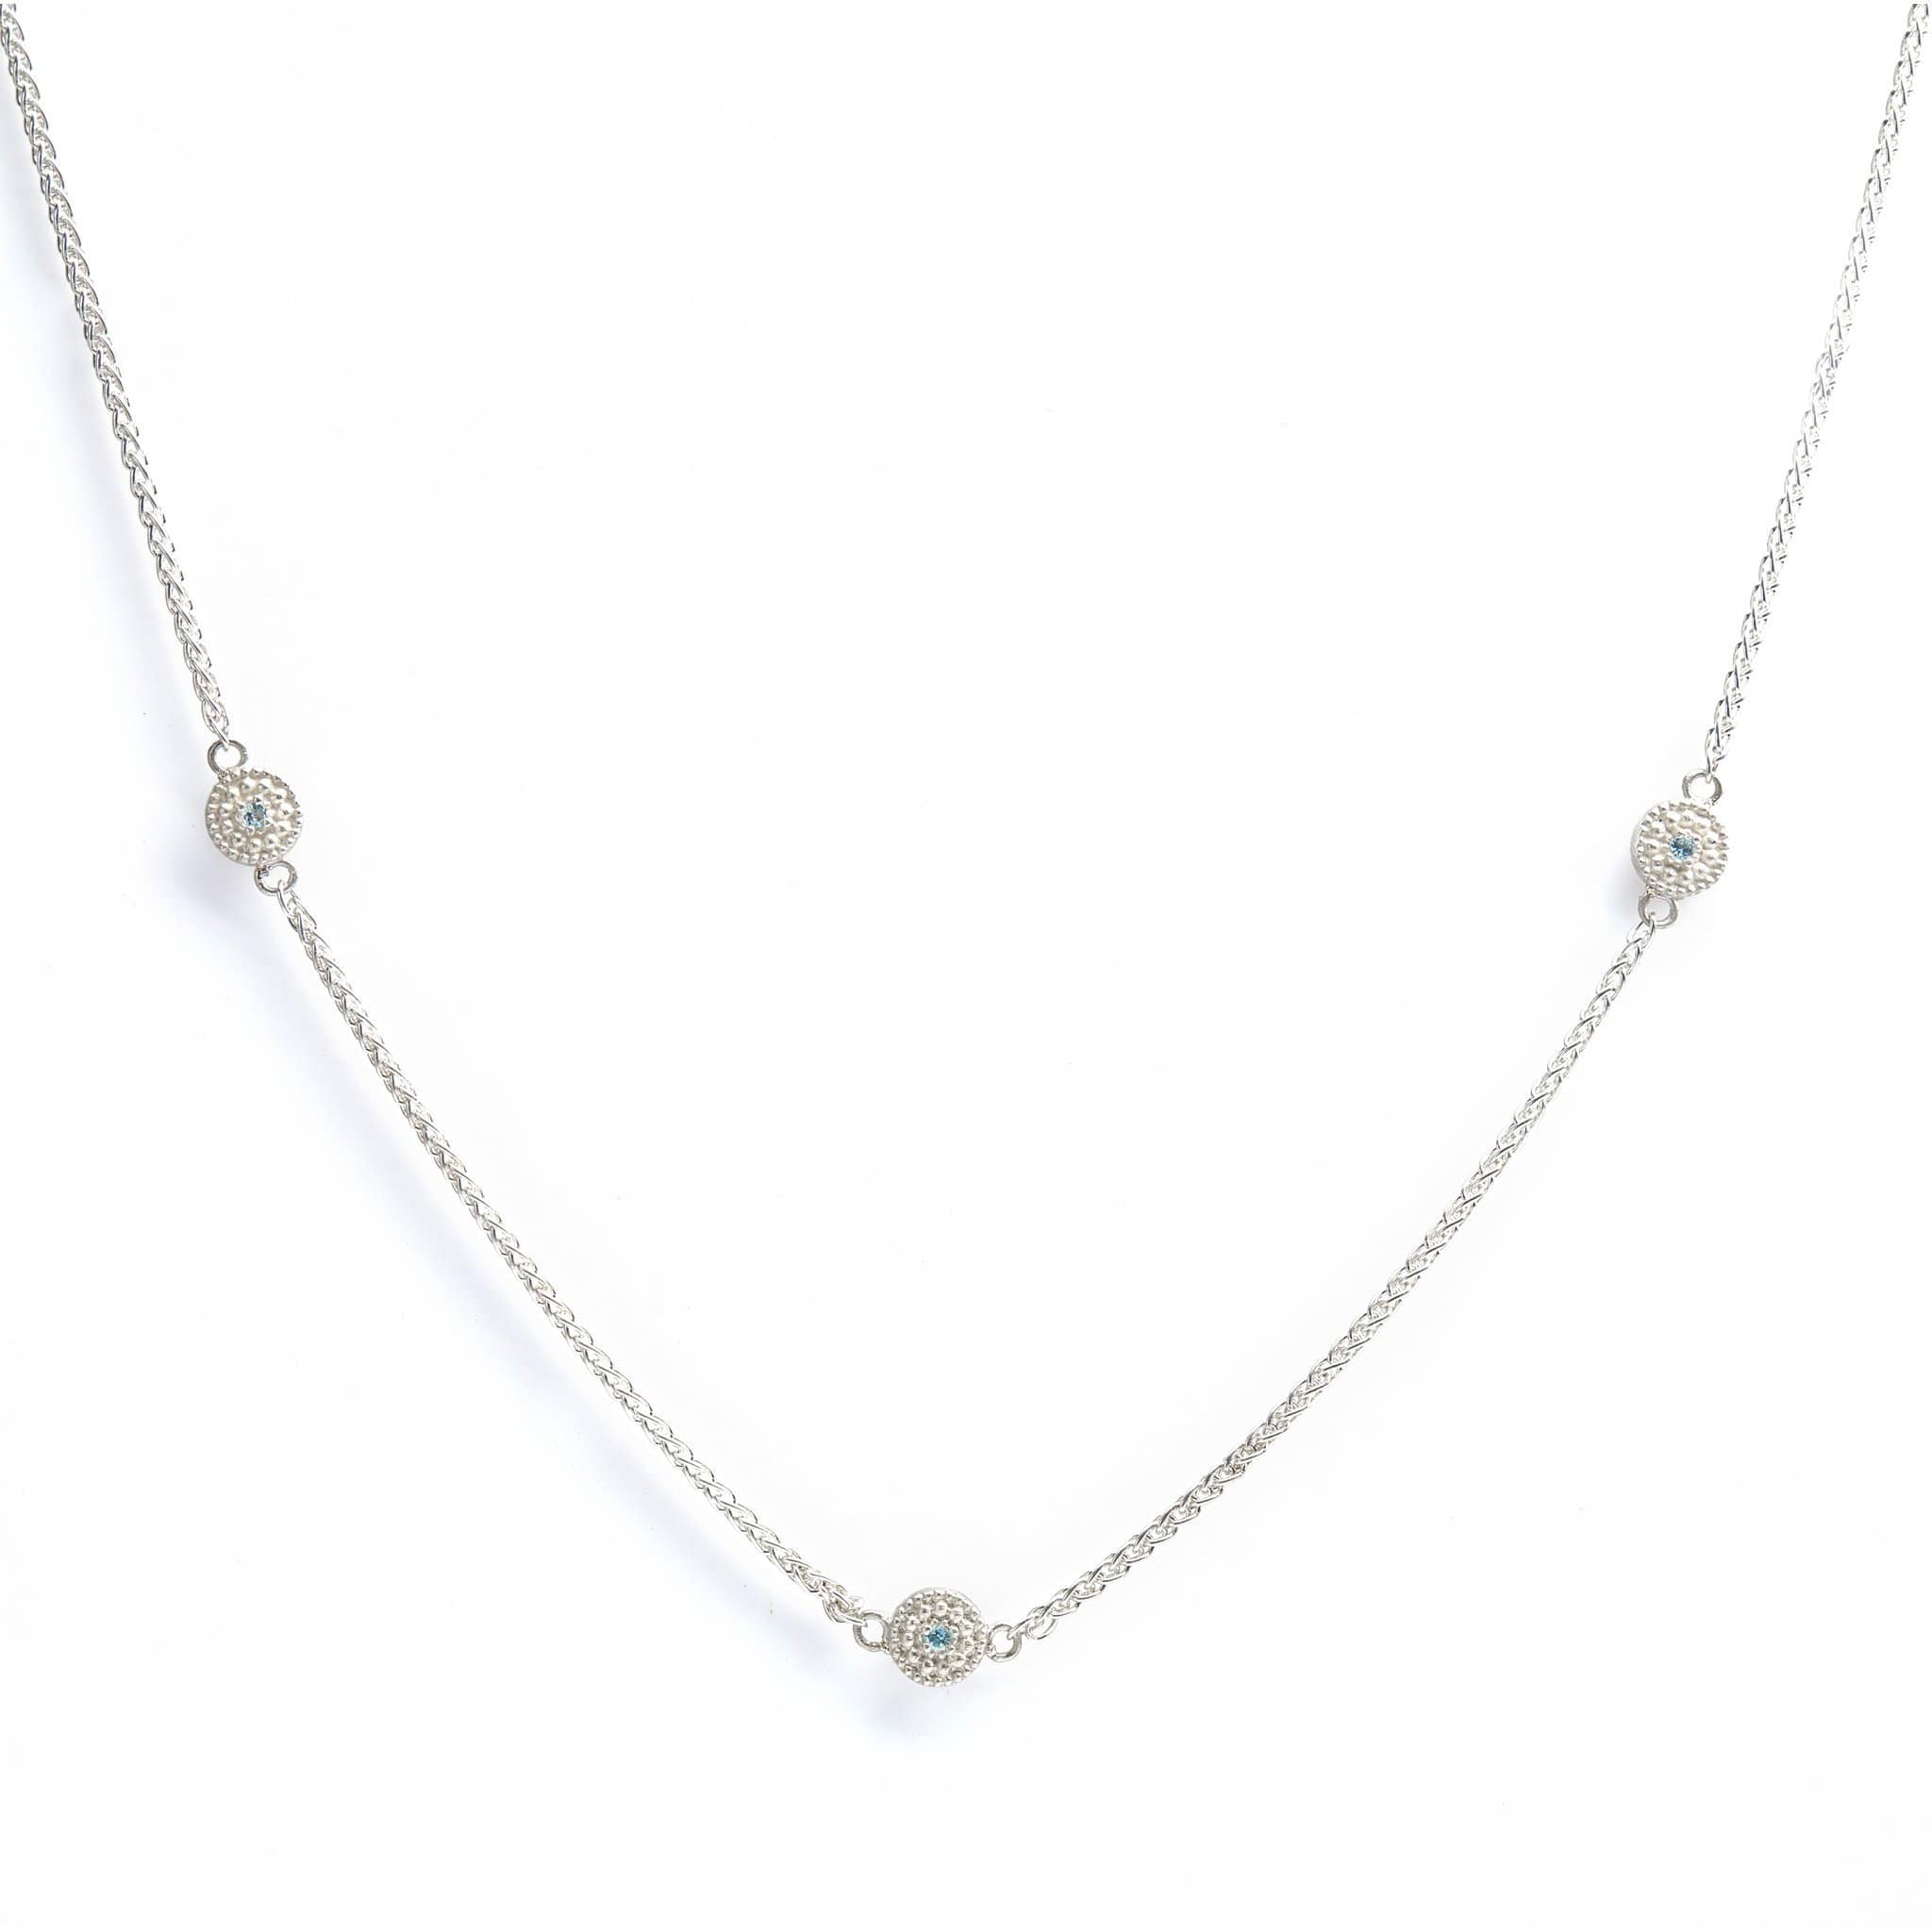 The Reverso Trio Necklace - Diamonds and Rubies